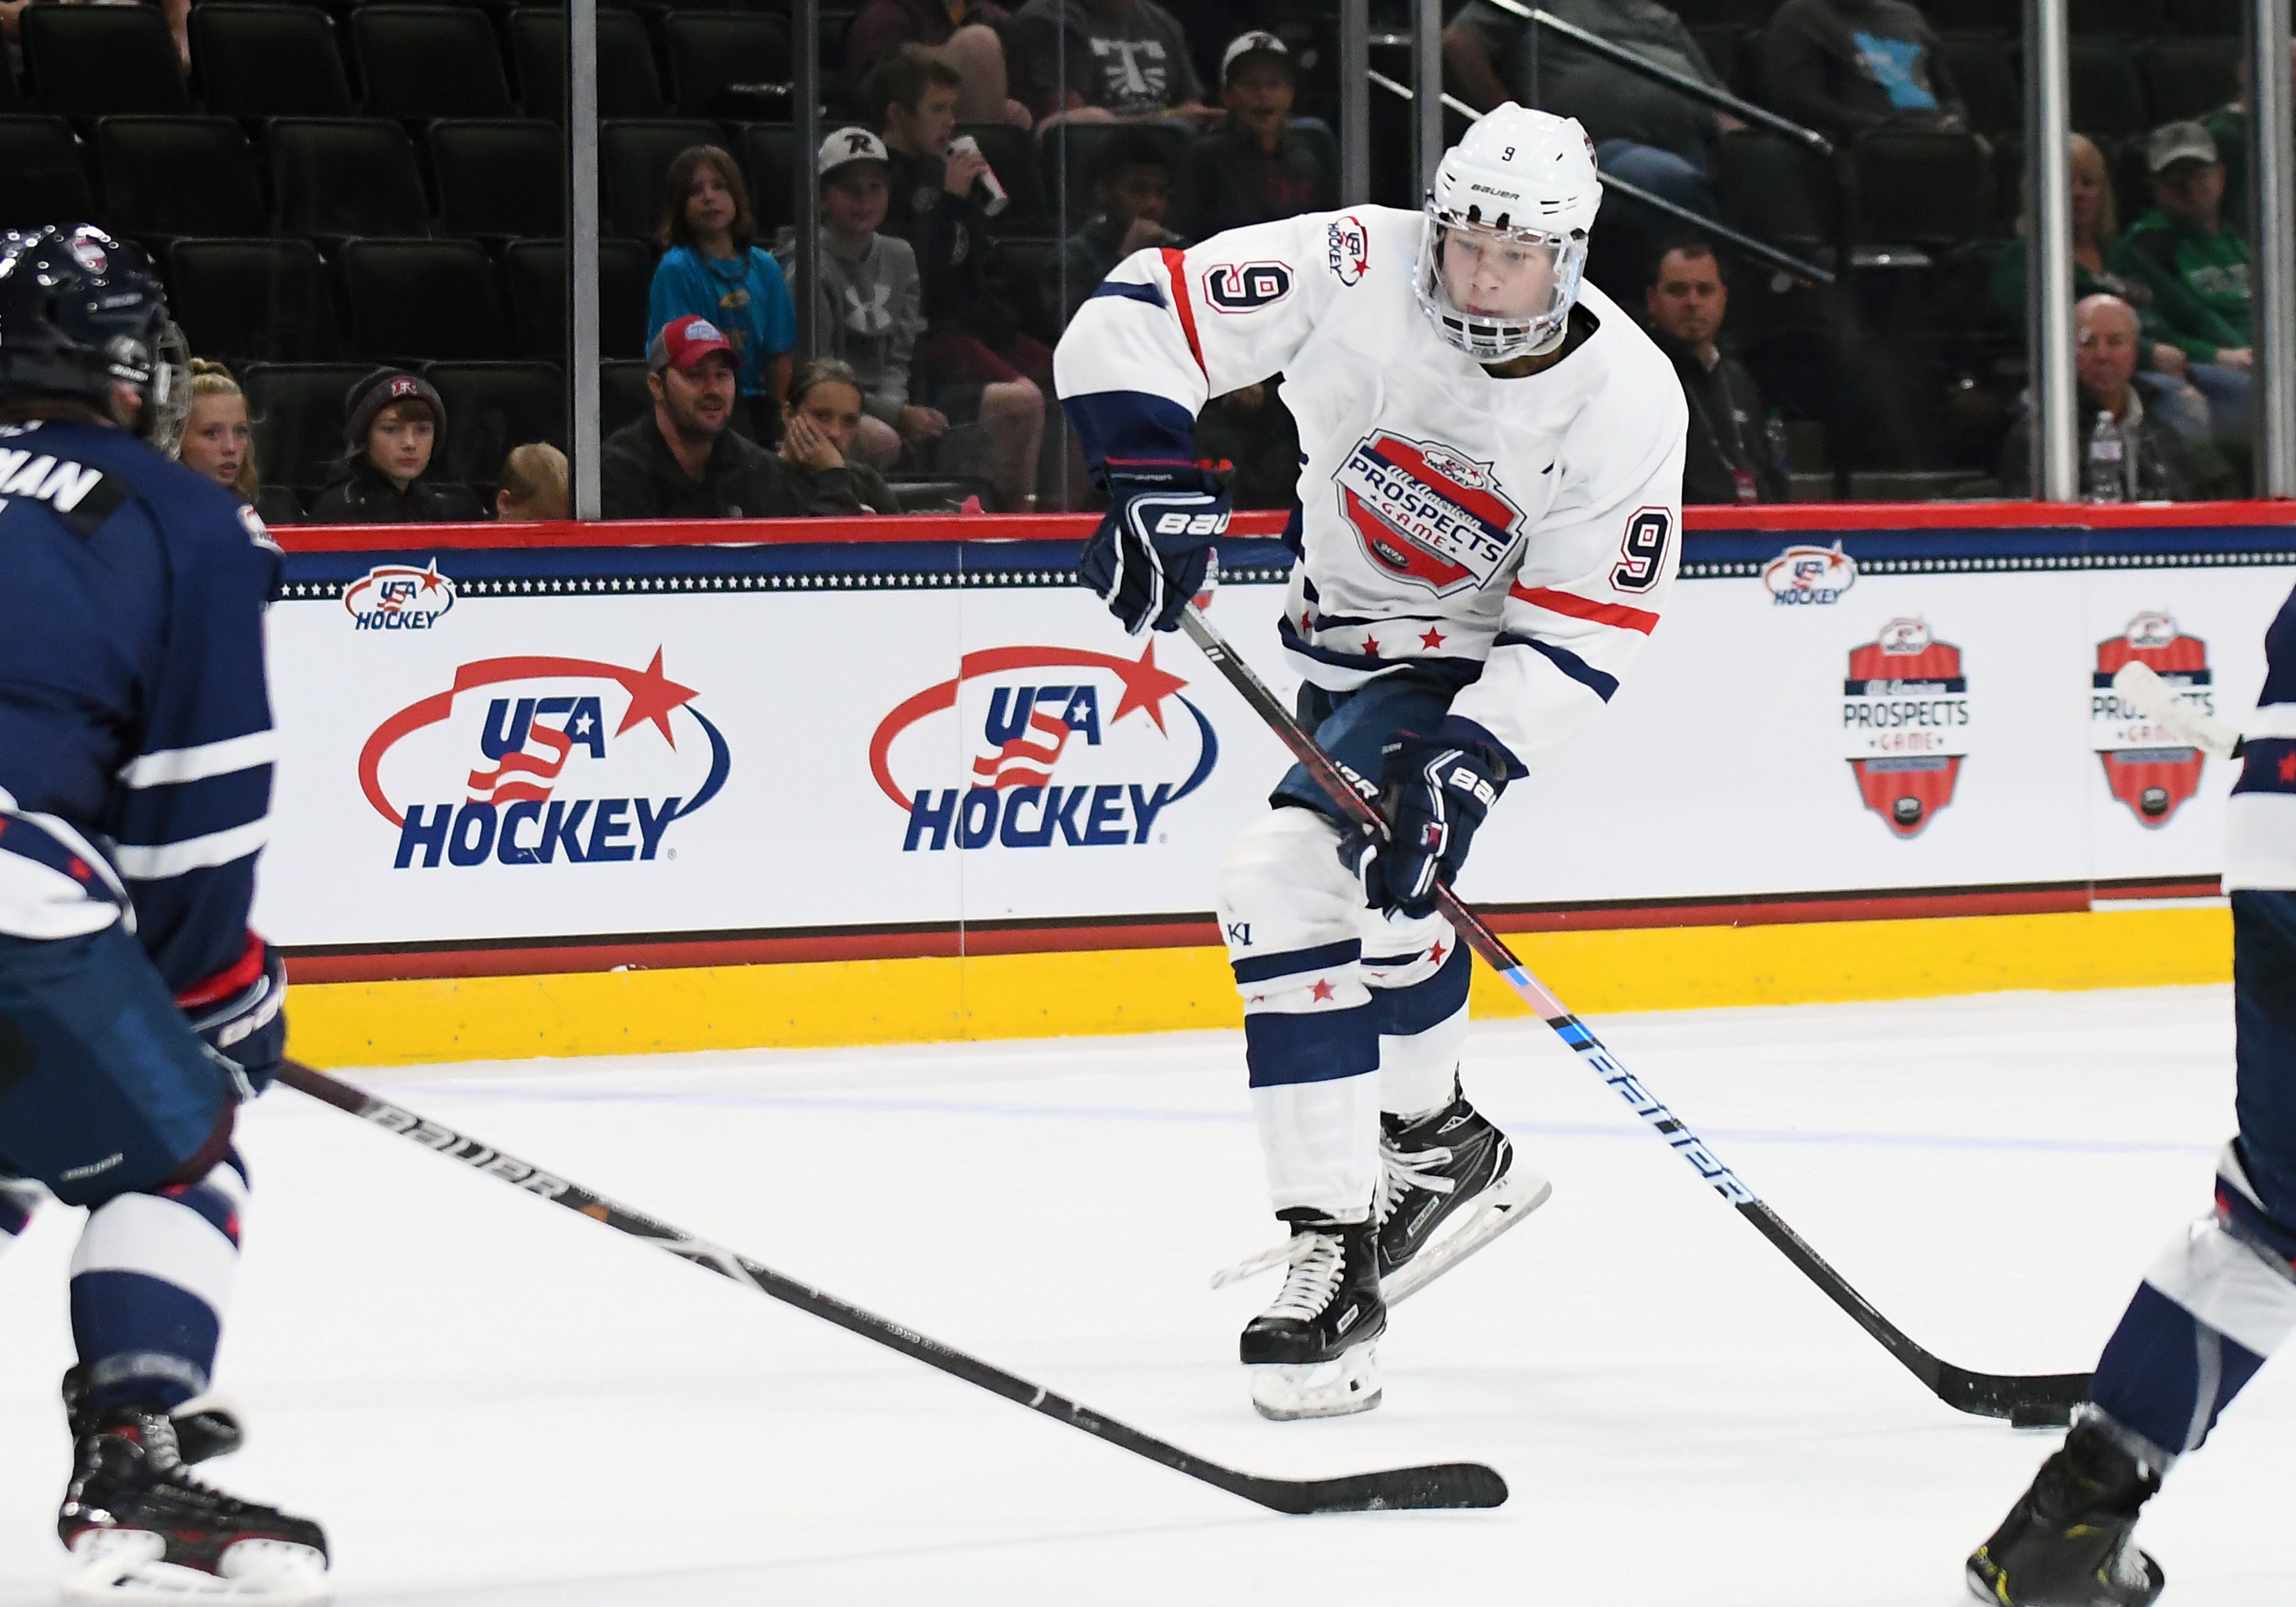 HOCKEY: SEP 19 USA Hockey All-American Prospects Game